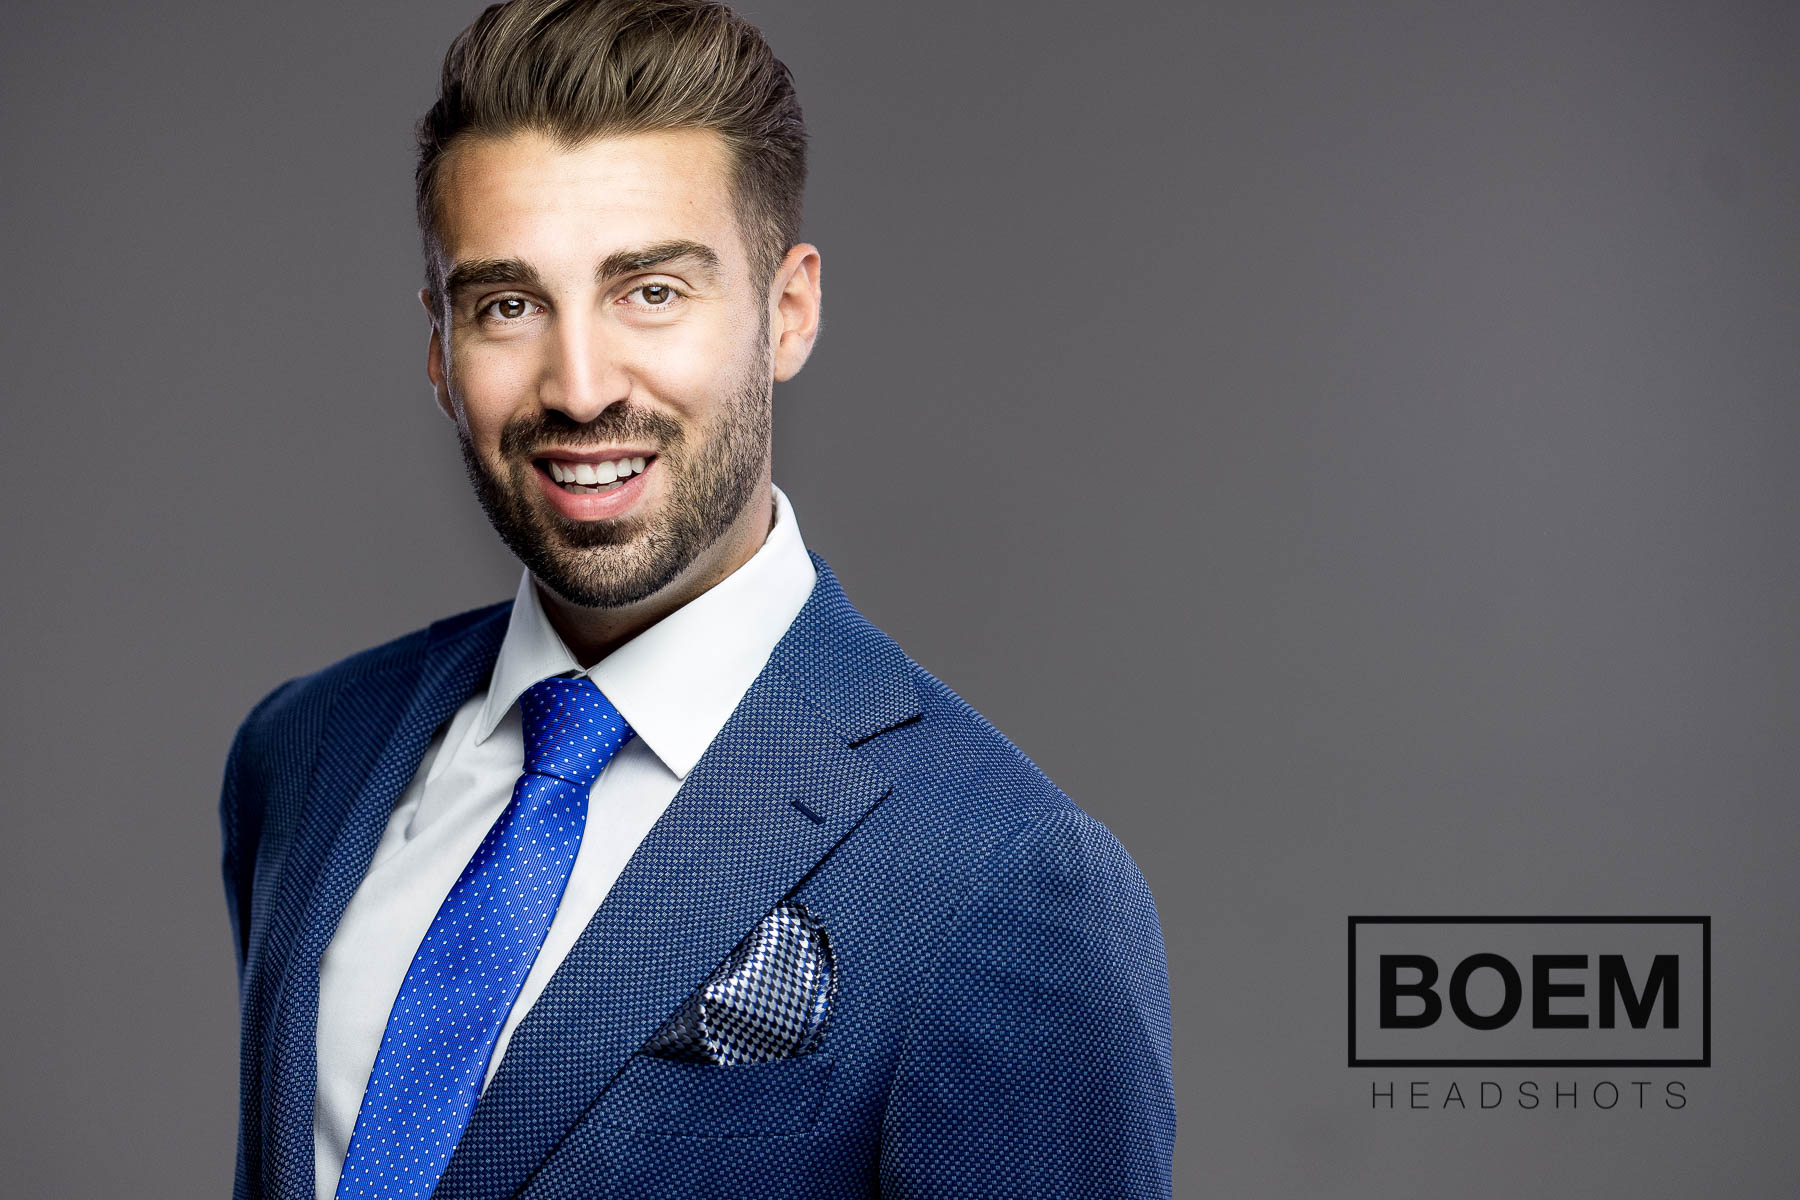 PREVIEW :: DOM :: EXECUTIVE HEADSHOTS